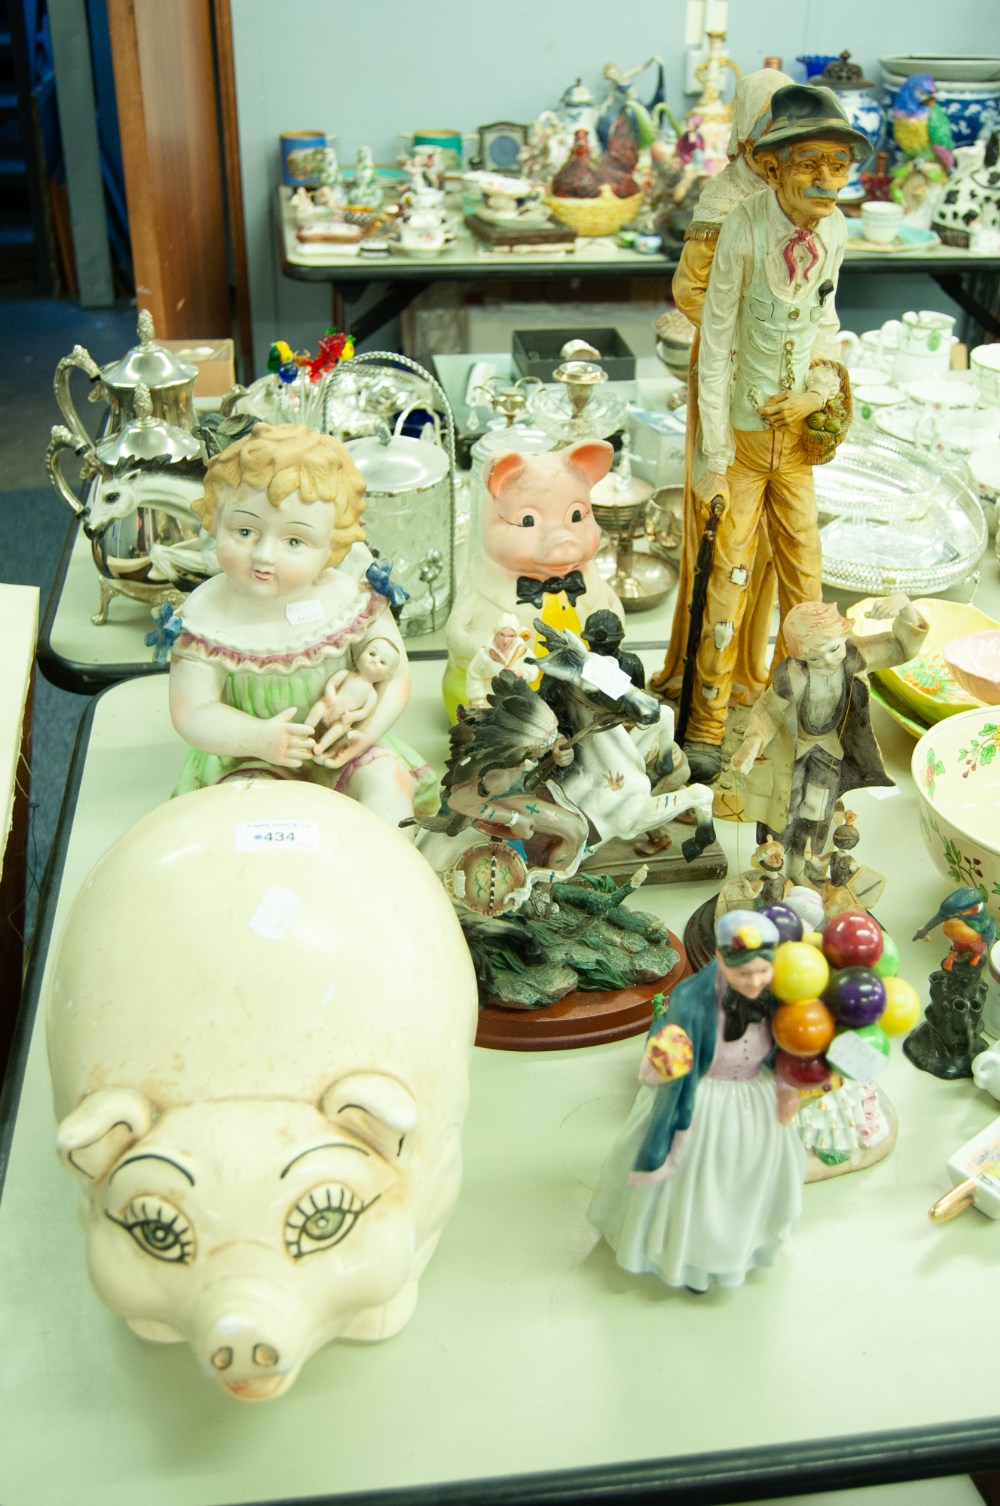 Lot 434 - A LARGE TINTED BISQUE FIGURE OF A SEATED FIRL WITH DOLL, TWO PIG MONEY BANKS, A LEONARDO LADY WITH